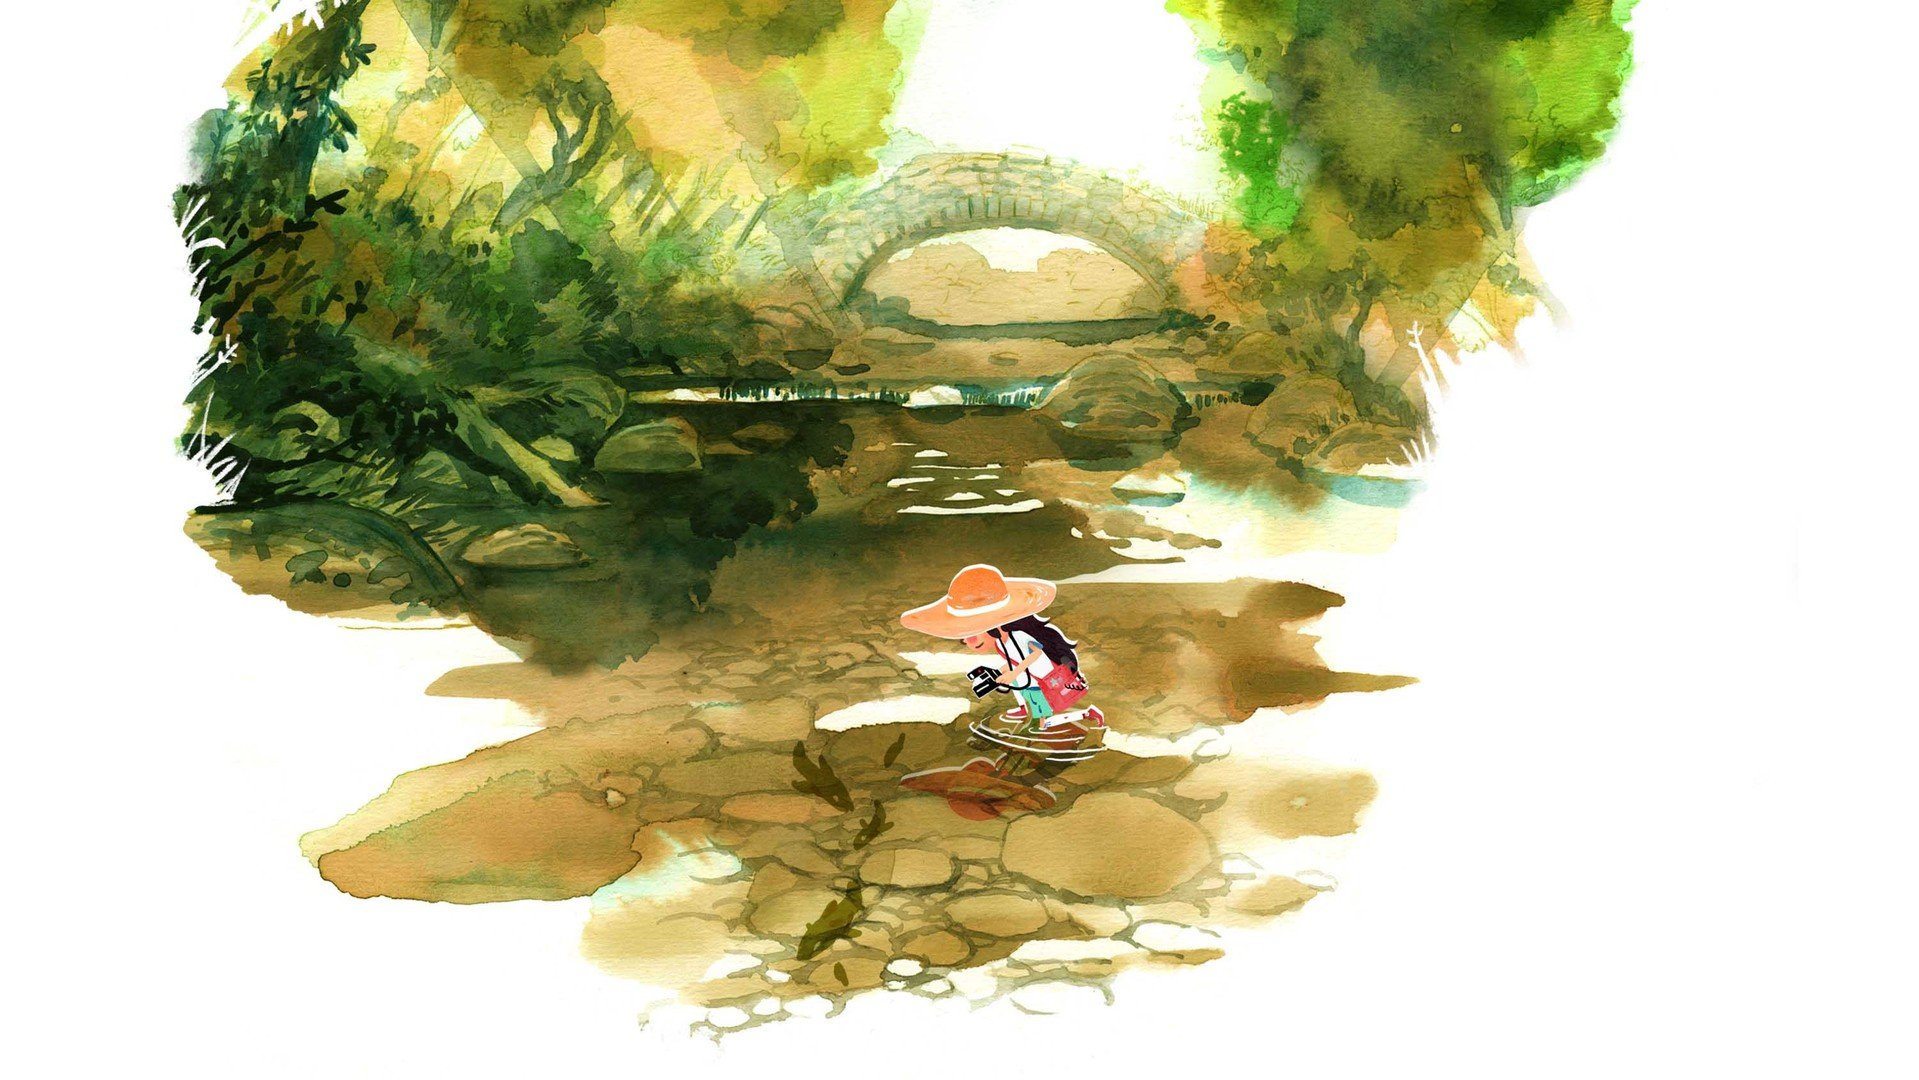 Showcasing some incredible indie art like this serene watercolor piece from the upcoming indie game, Dordogne.